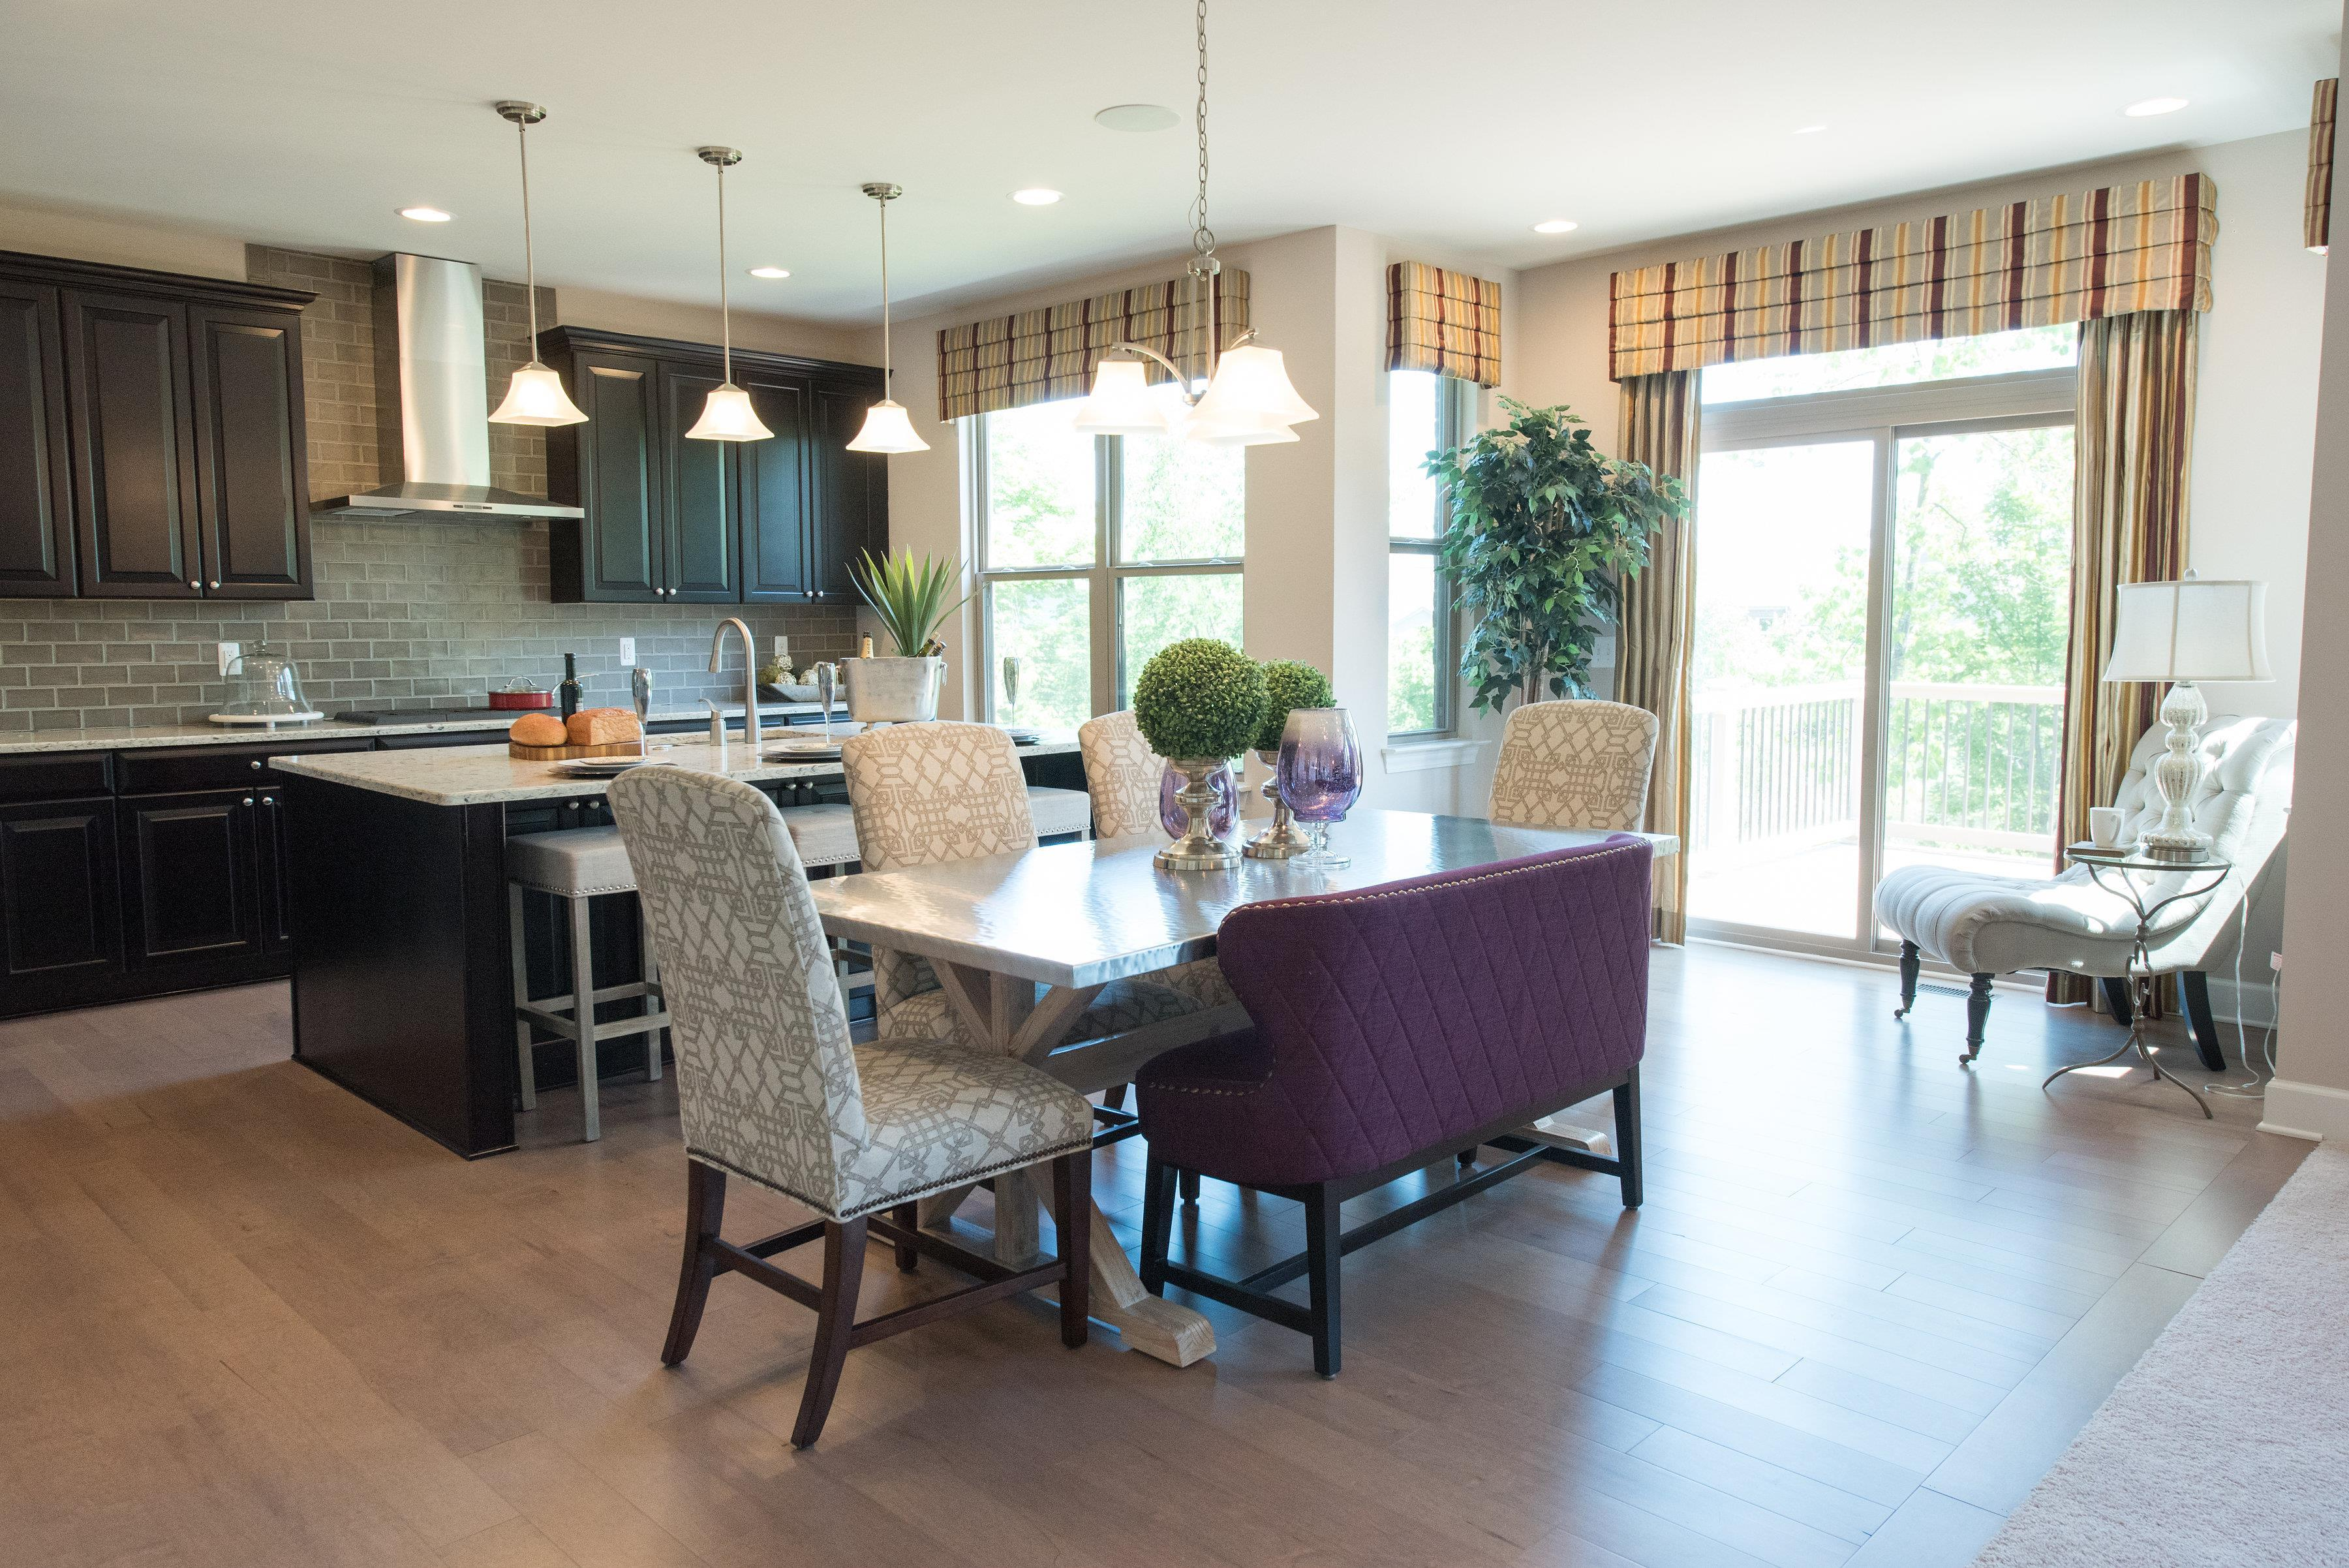 Kitchen featured in the Rockport II  By Singh Homes in Detroit, MI